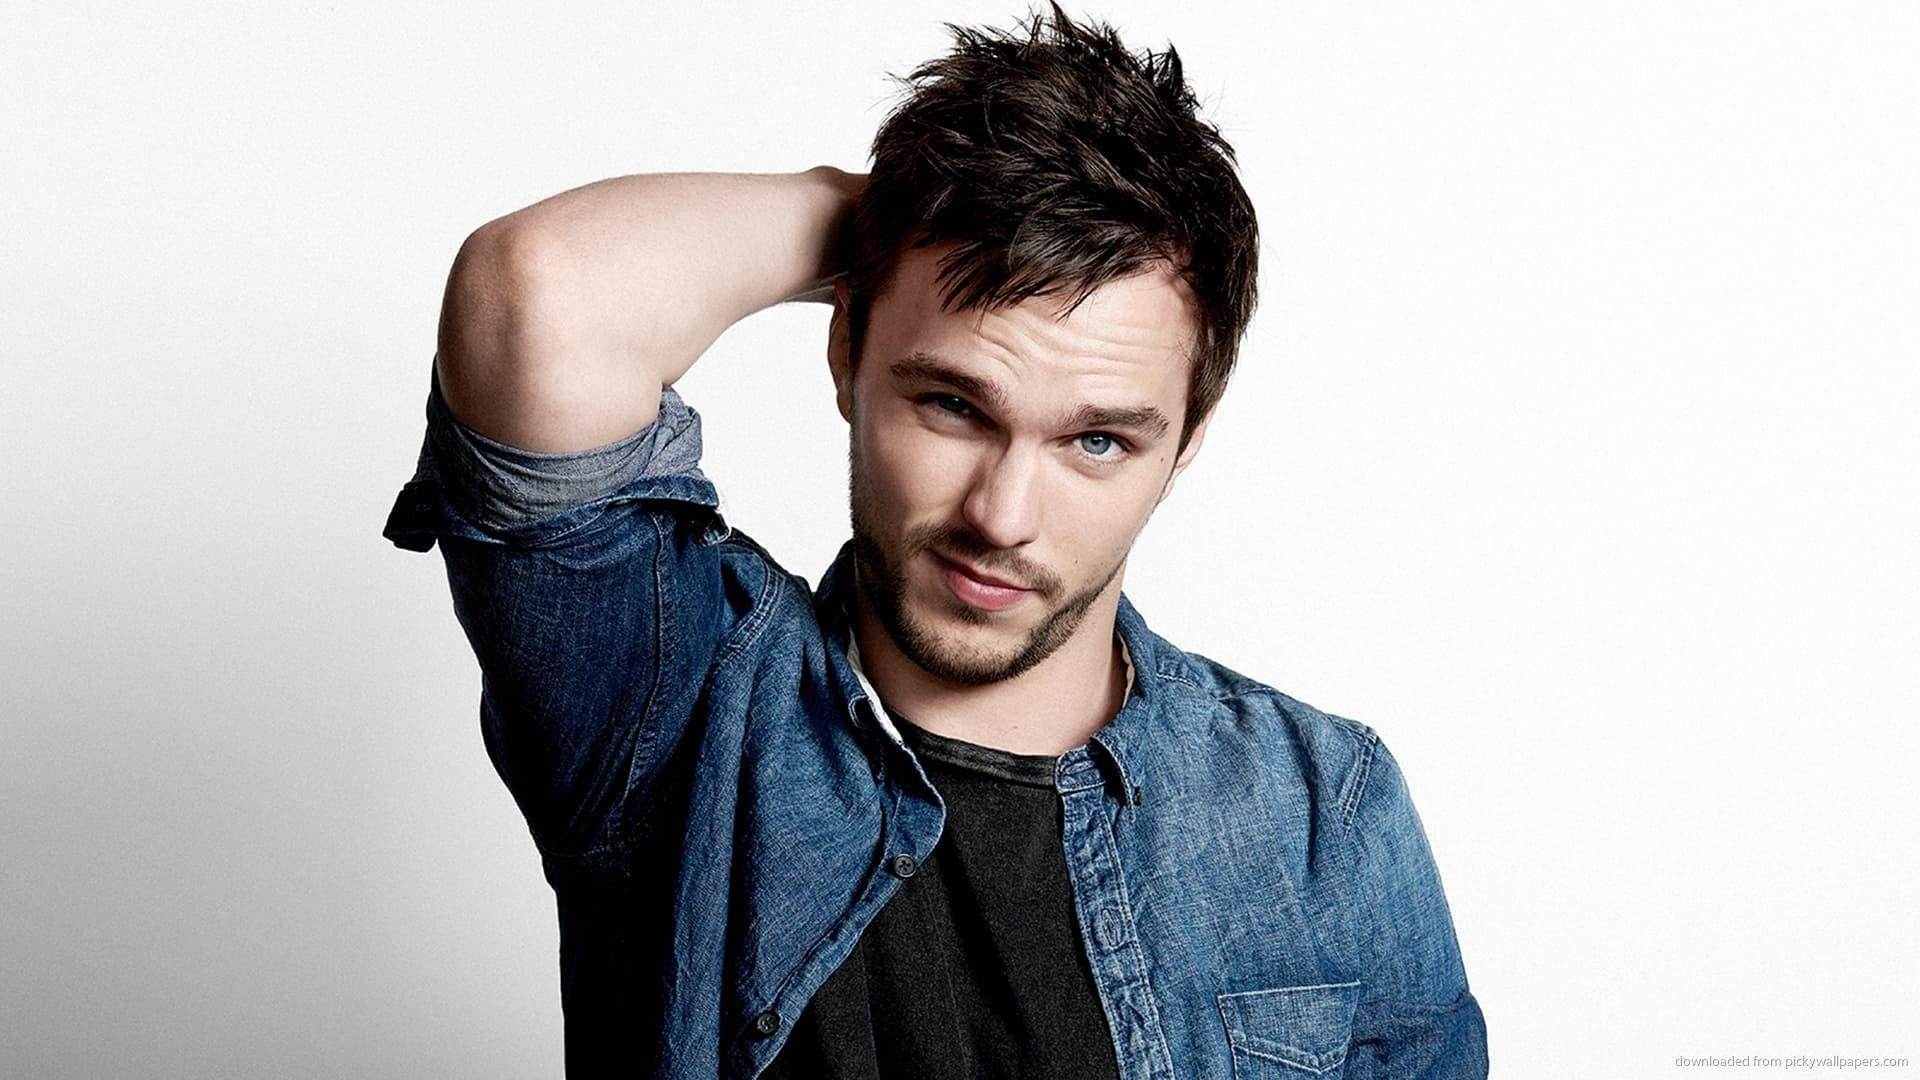 Nicholas Hoult Wallpapers and Background Images   stmednet 1920x1080